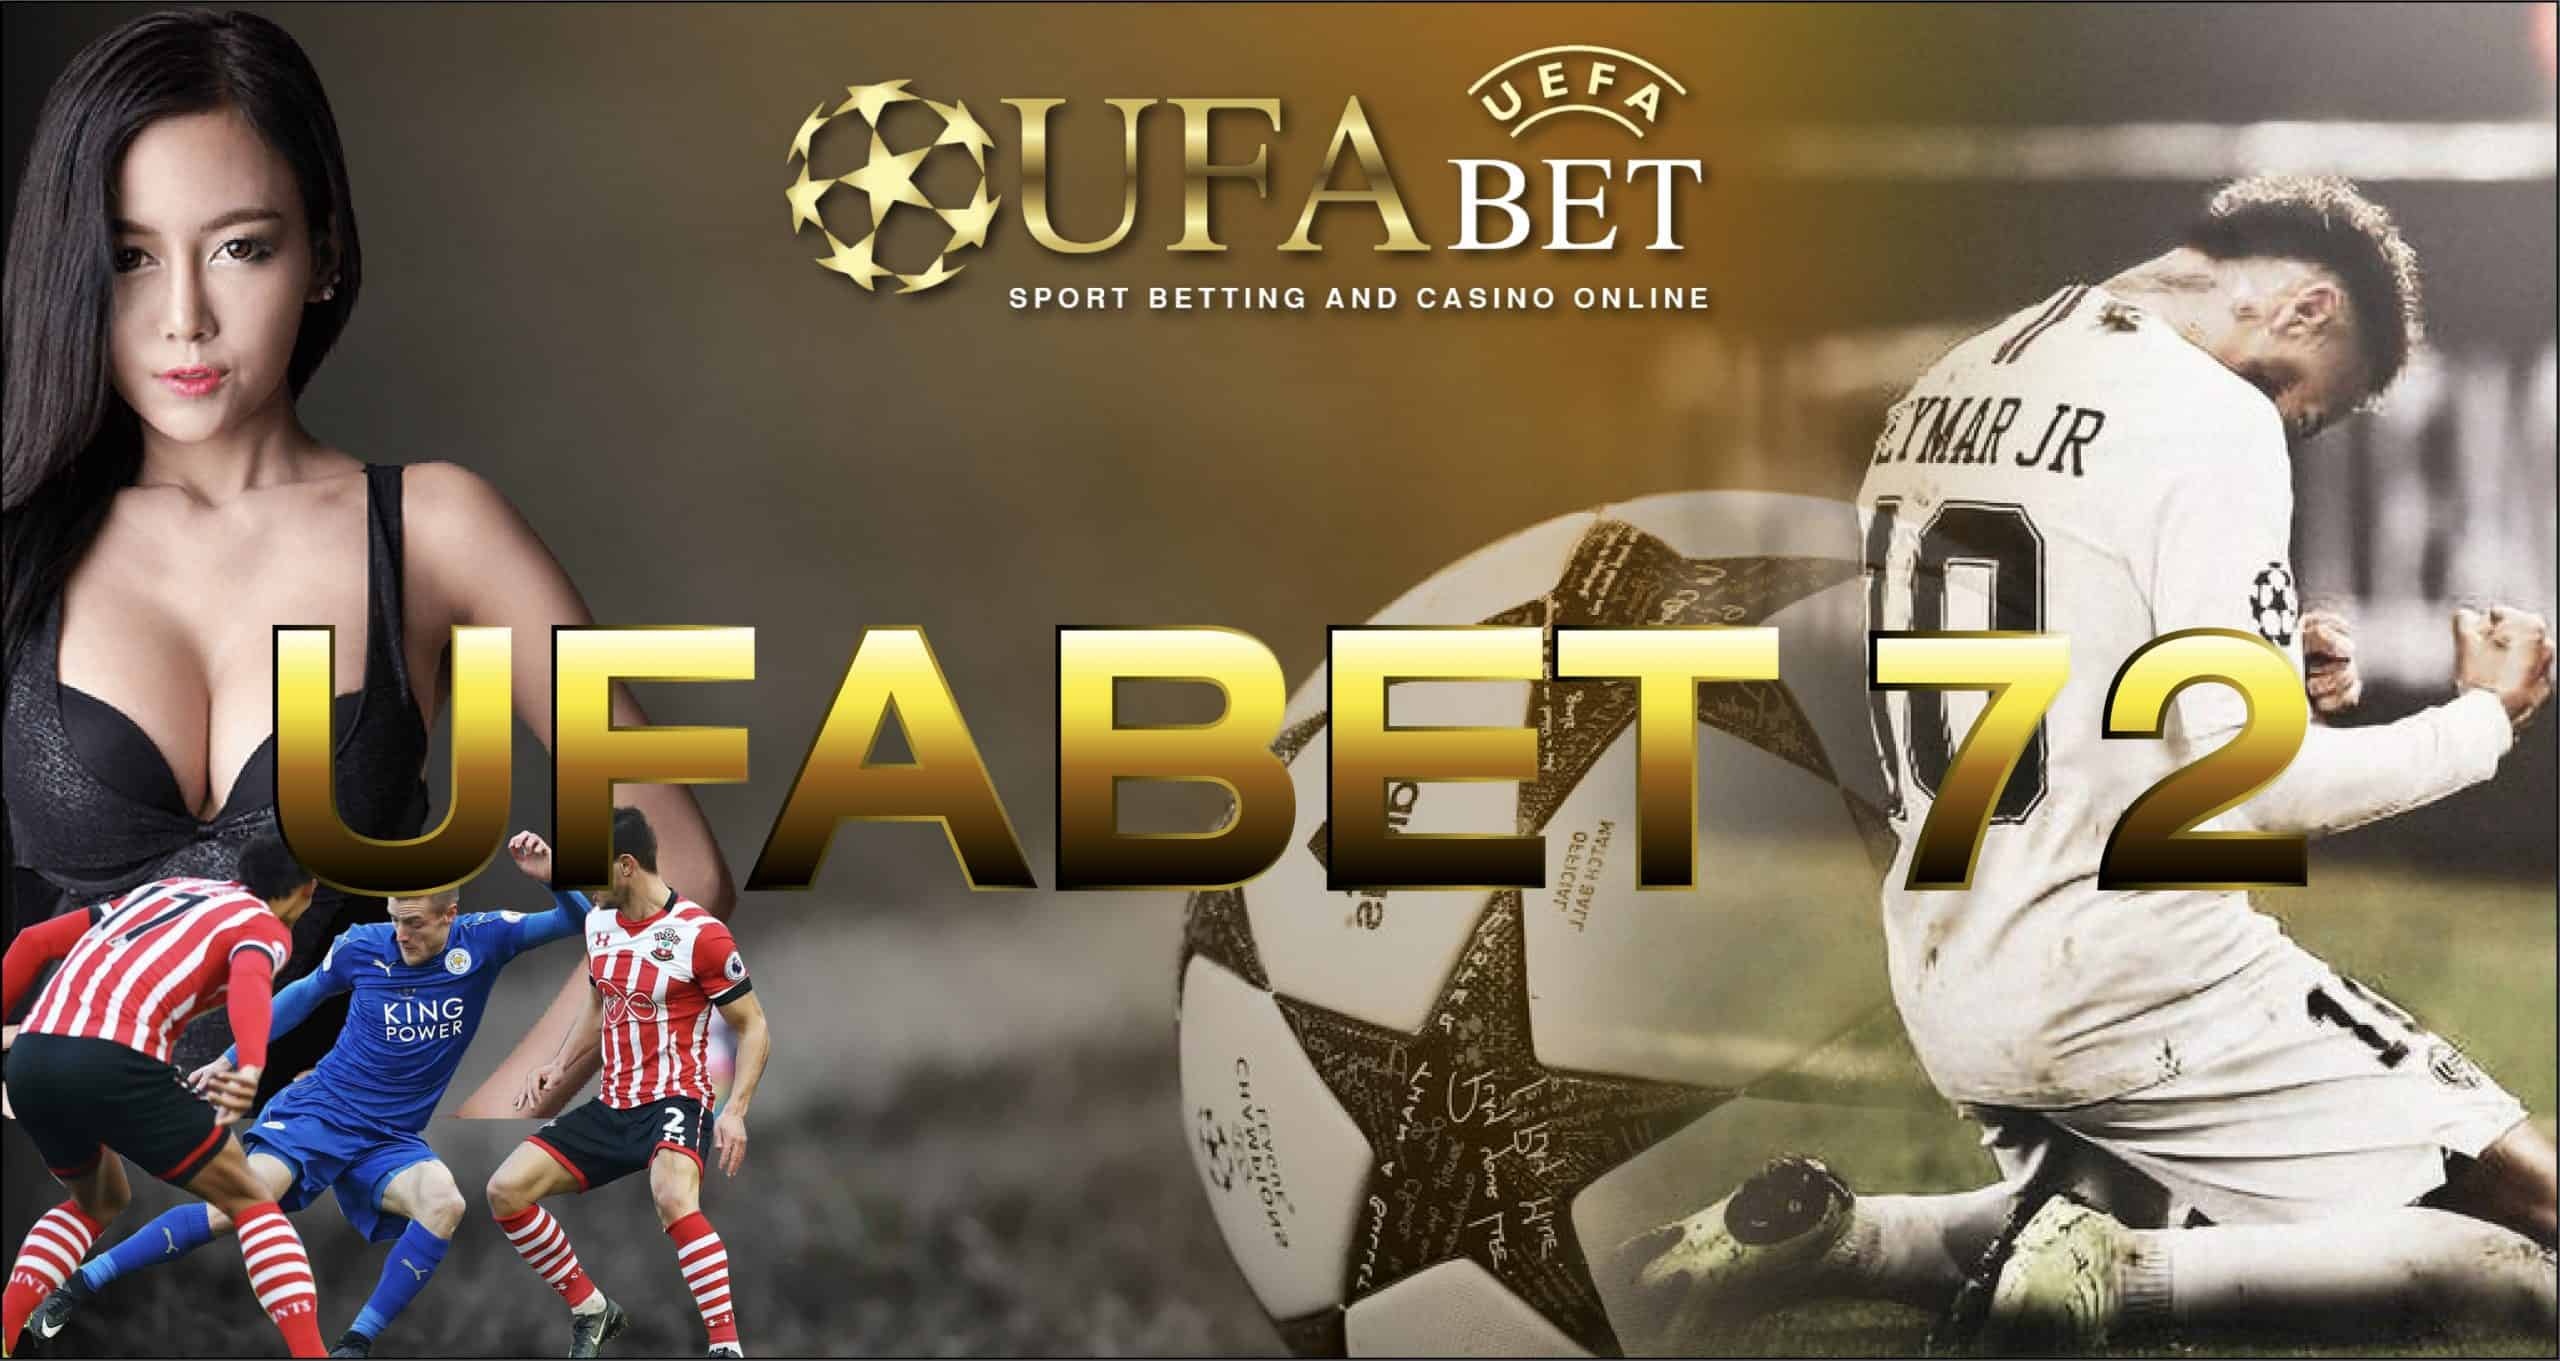 Find out how convenient it is to bet all your money in a live casino ( คาสิโนถ่ายทอดสด)